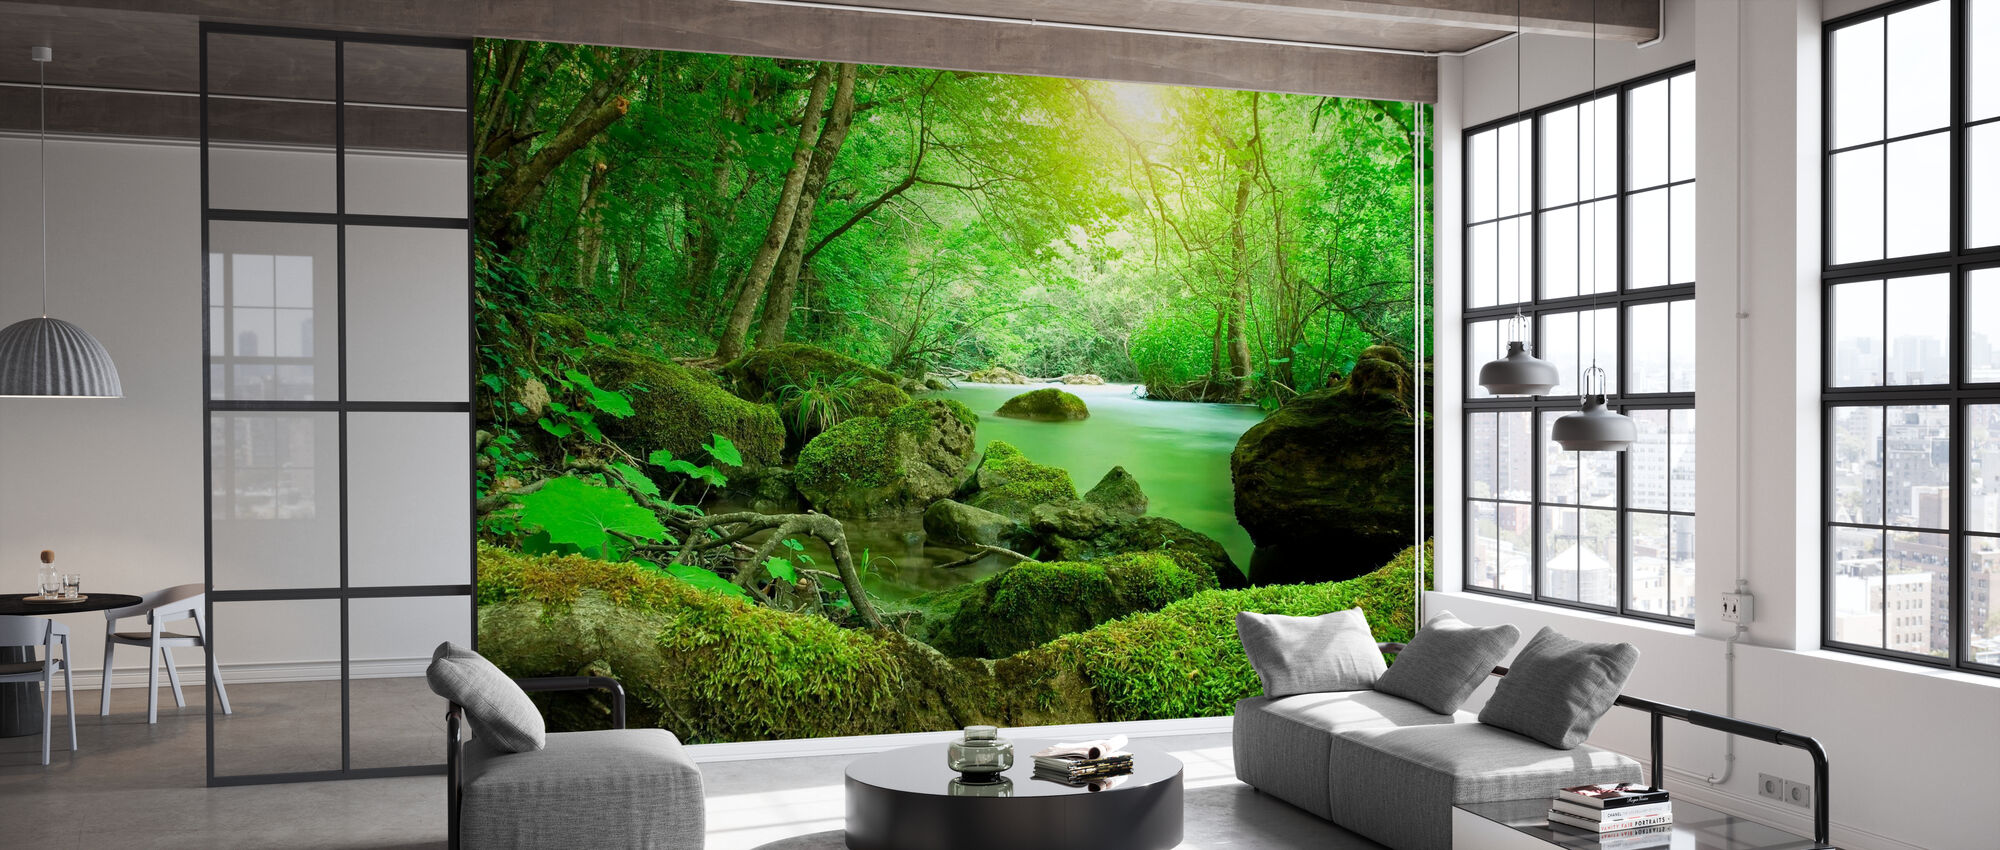 River in the Forest - Wallpaper - Office